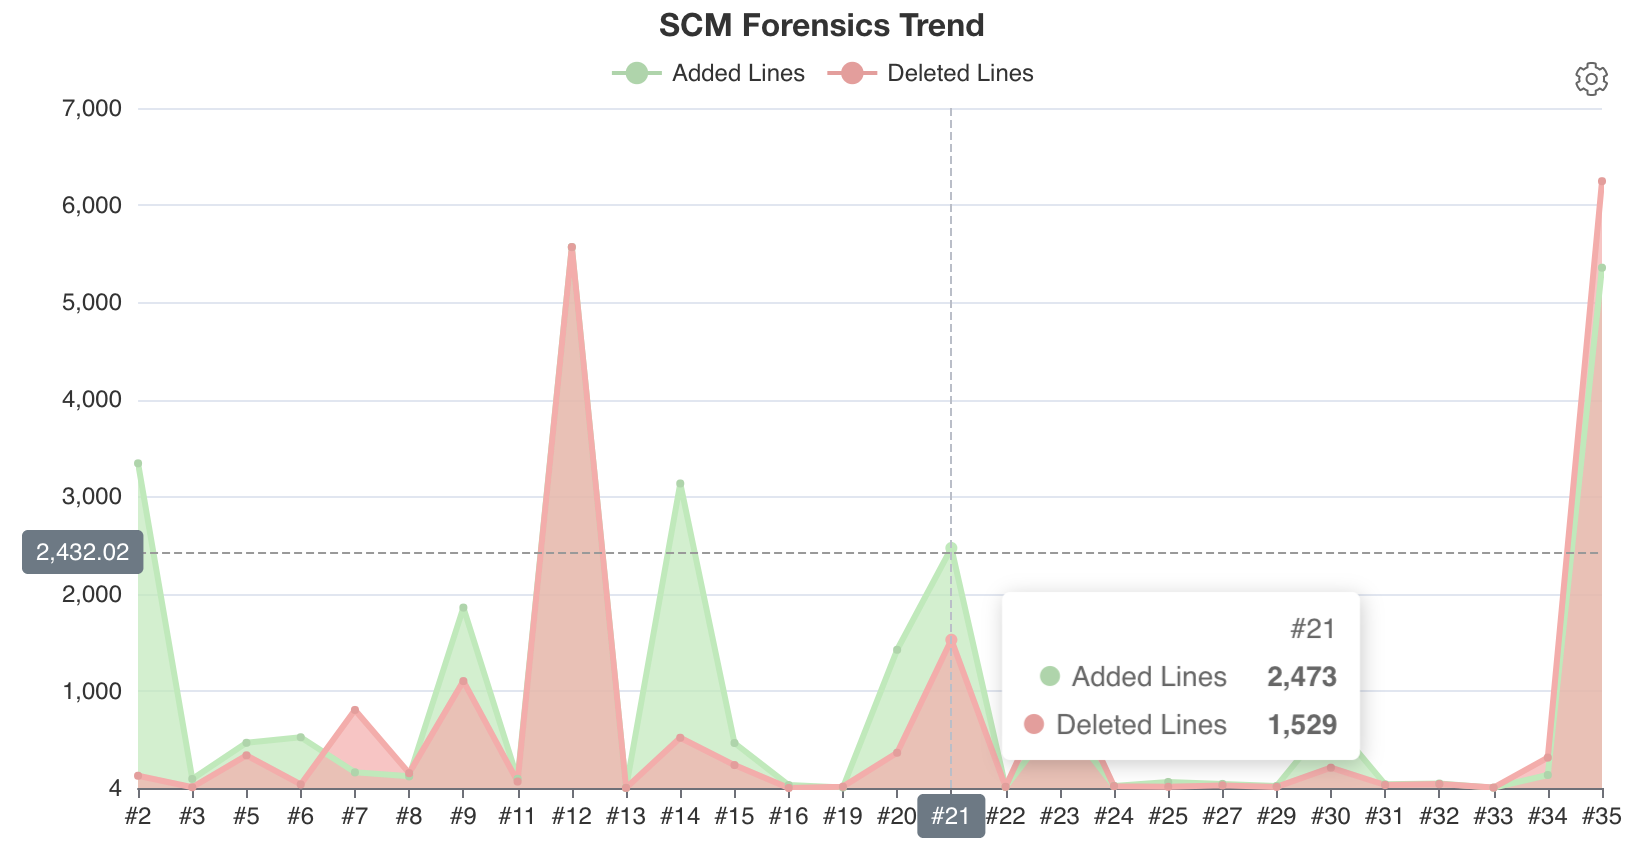 Deleted and added lines trend chart